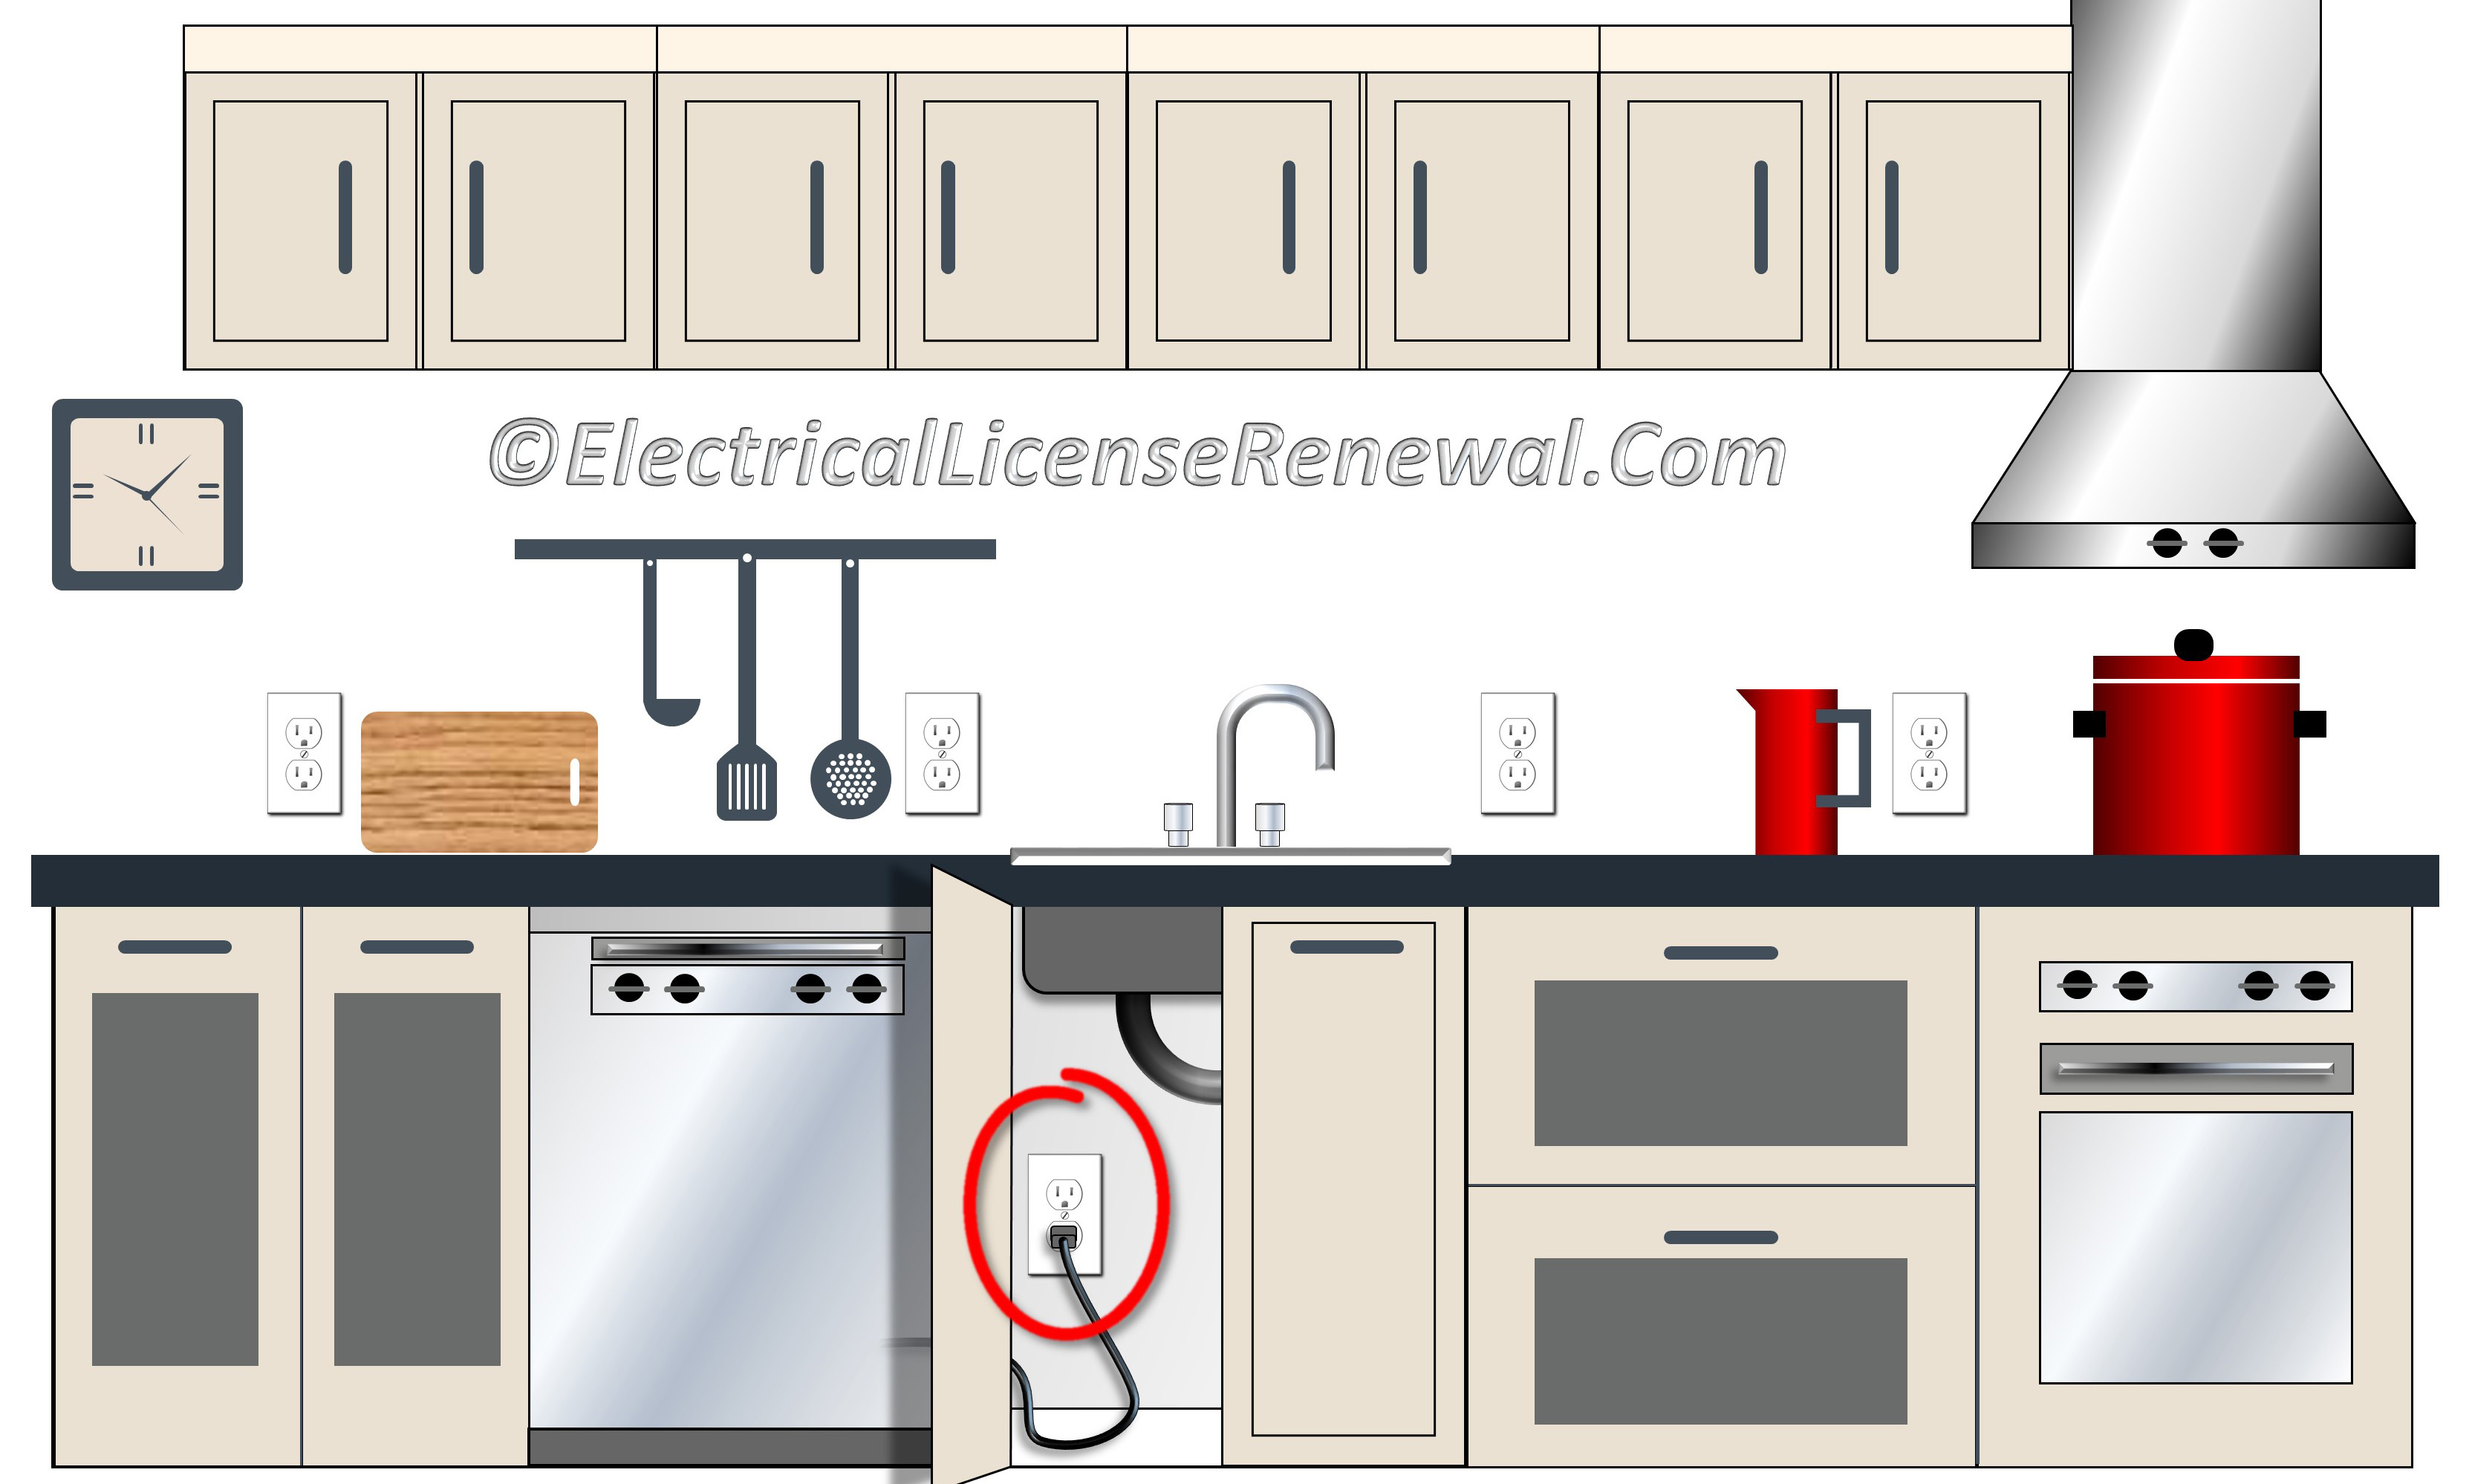 Nec Wiring 2017 Kitchen Engine Control Diagram 422 16 B 2 Built In Dishwashers And Trash Compactors Rh Electricallicenserenewal Com Gfci